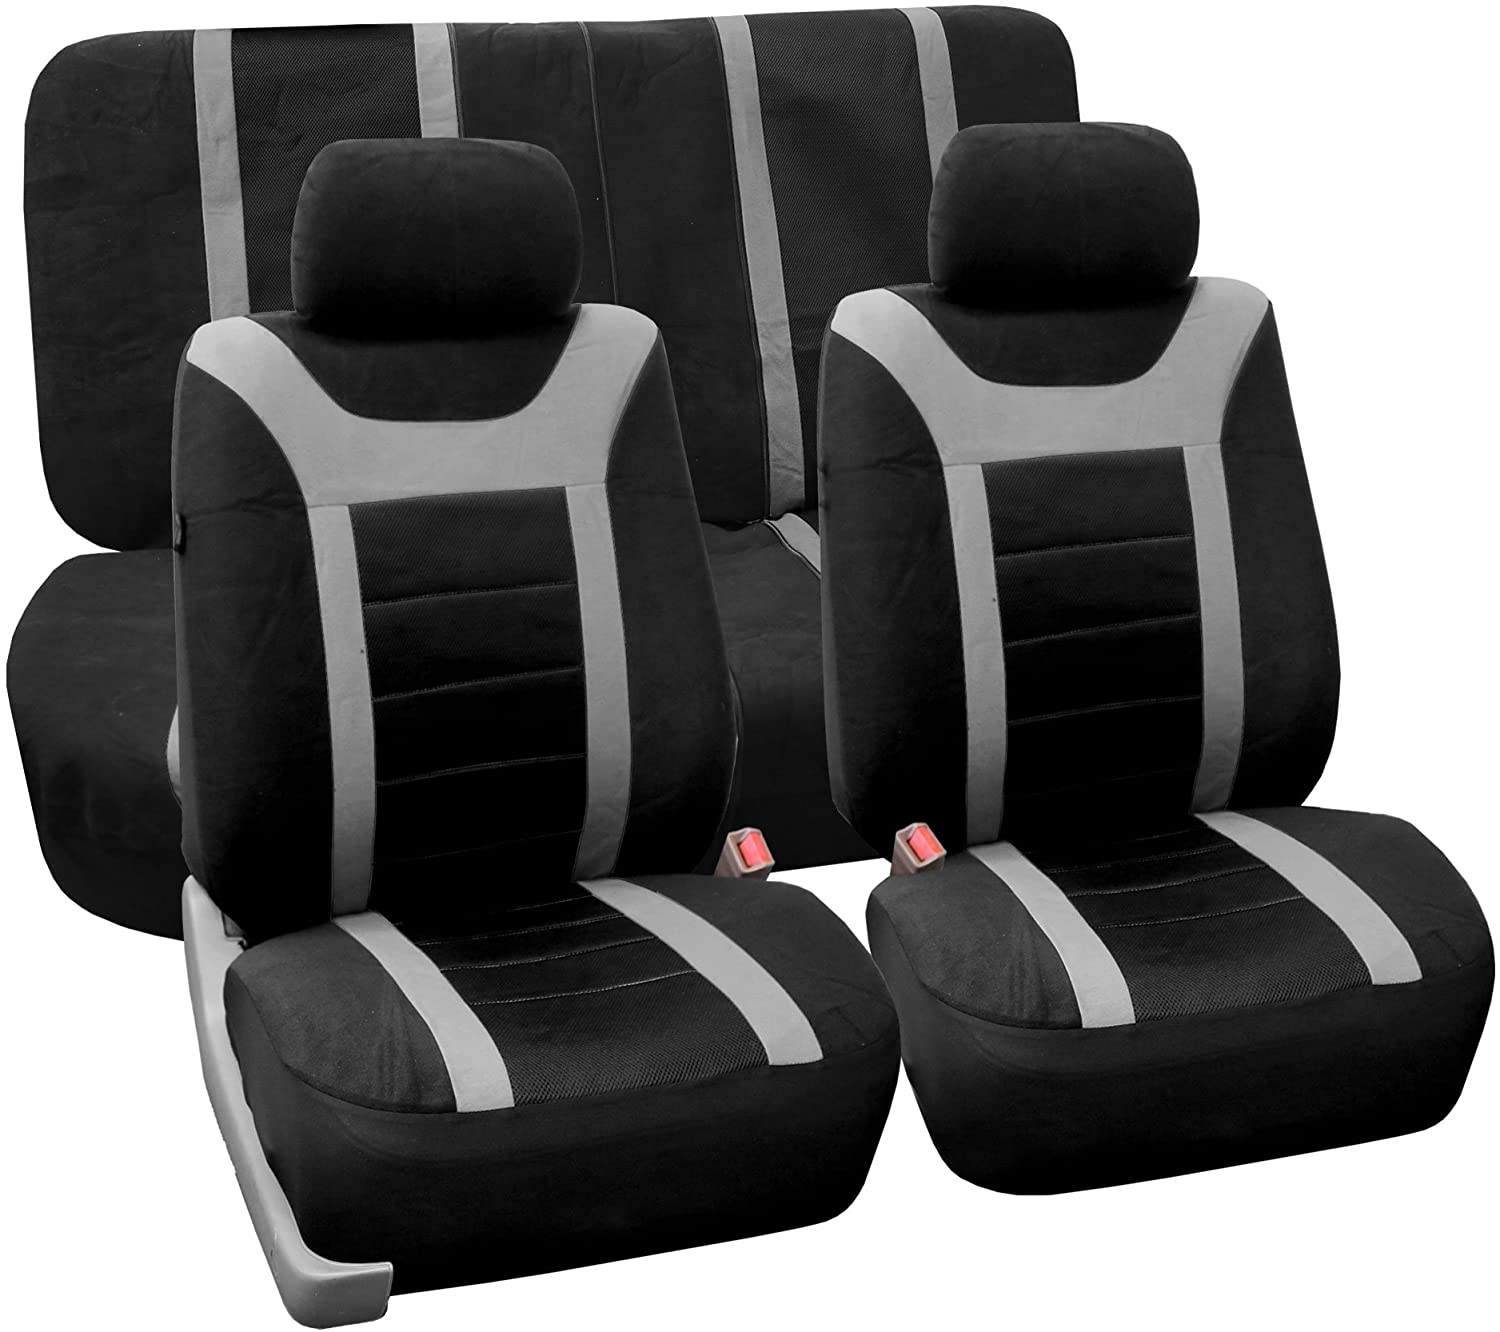 FH Group FB070112 Sports Seat Covers (Gray) Full Set with Gift – Universal Fit for Cars Trucks & SUVs